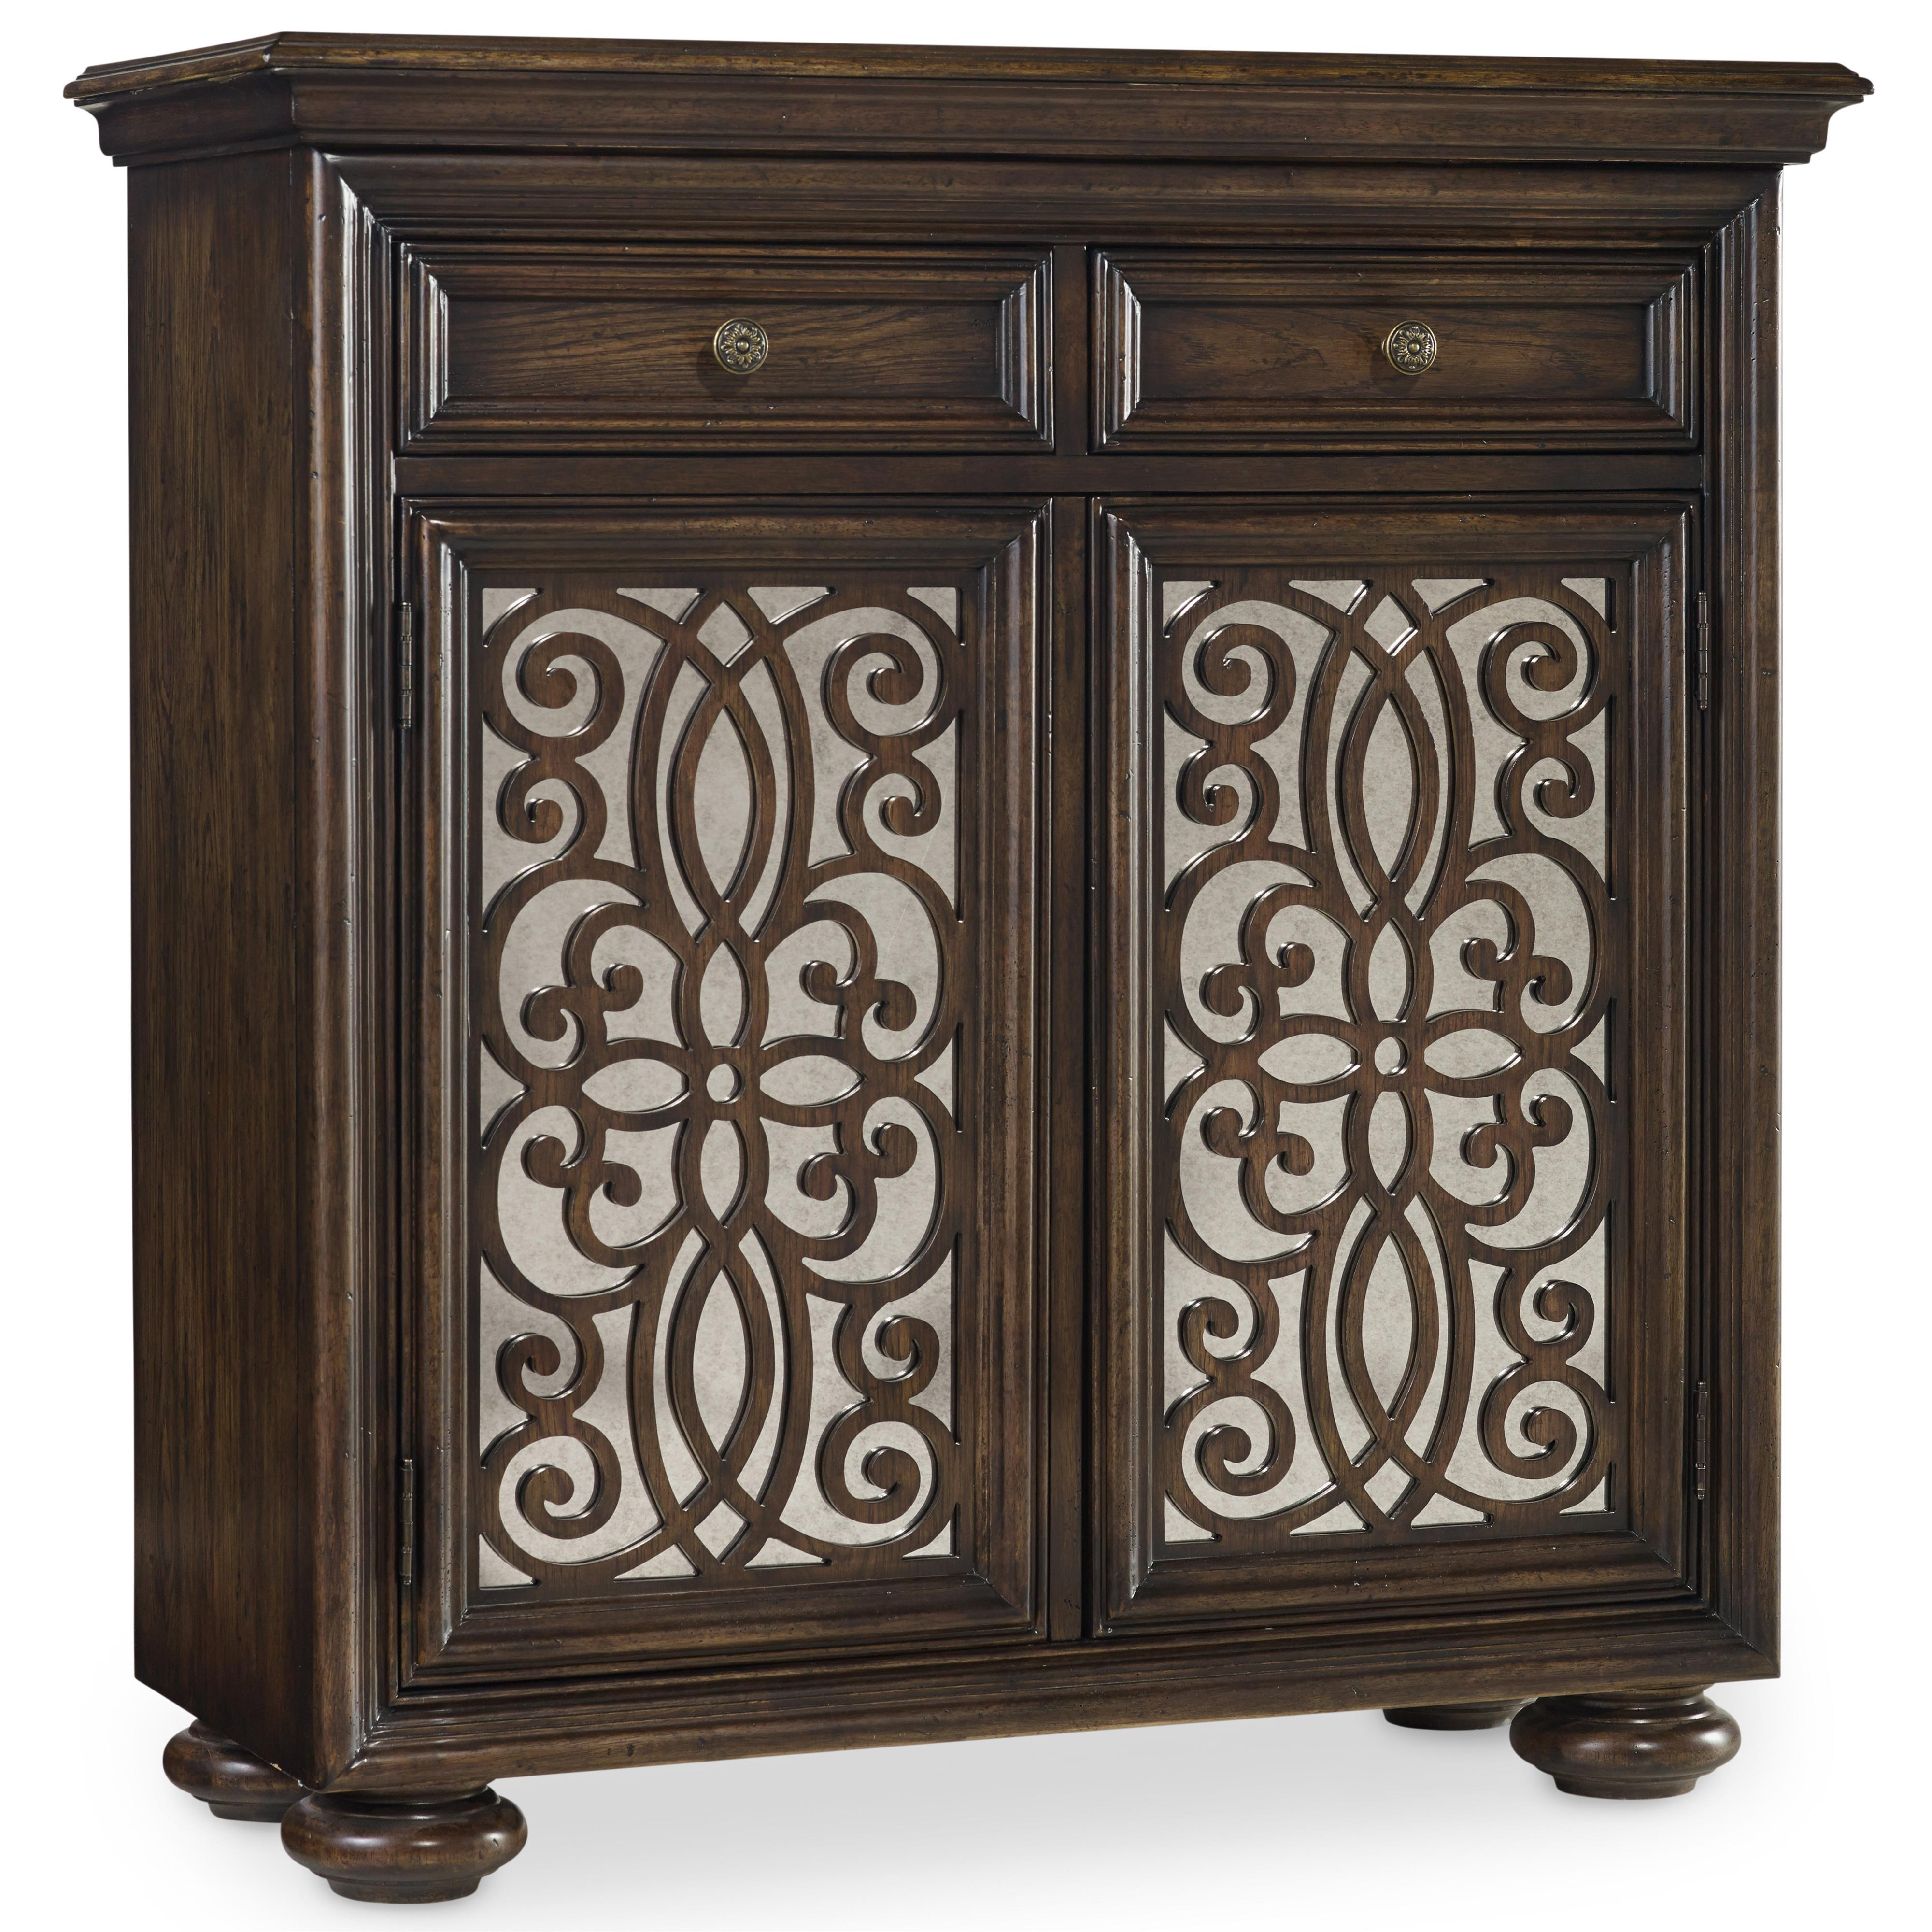 Living Room Accents 2 Door Fretwork Chest with Mirrored Doors by Hooker Furniture  sc 1 st  Find Your Furniture & Hooker Furniture Living Room Accents 2 Door Fretwork Chest with ...